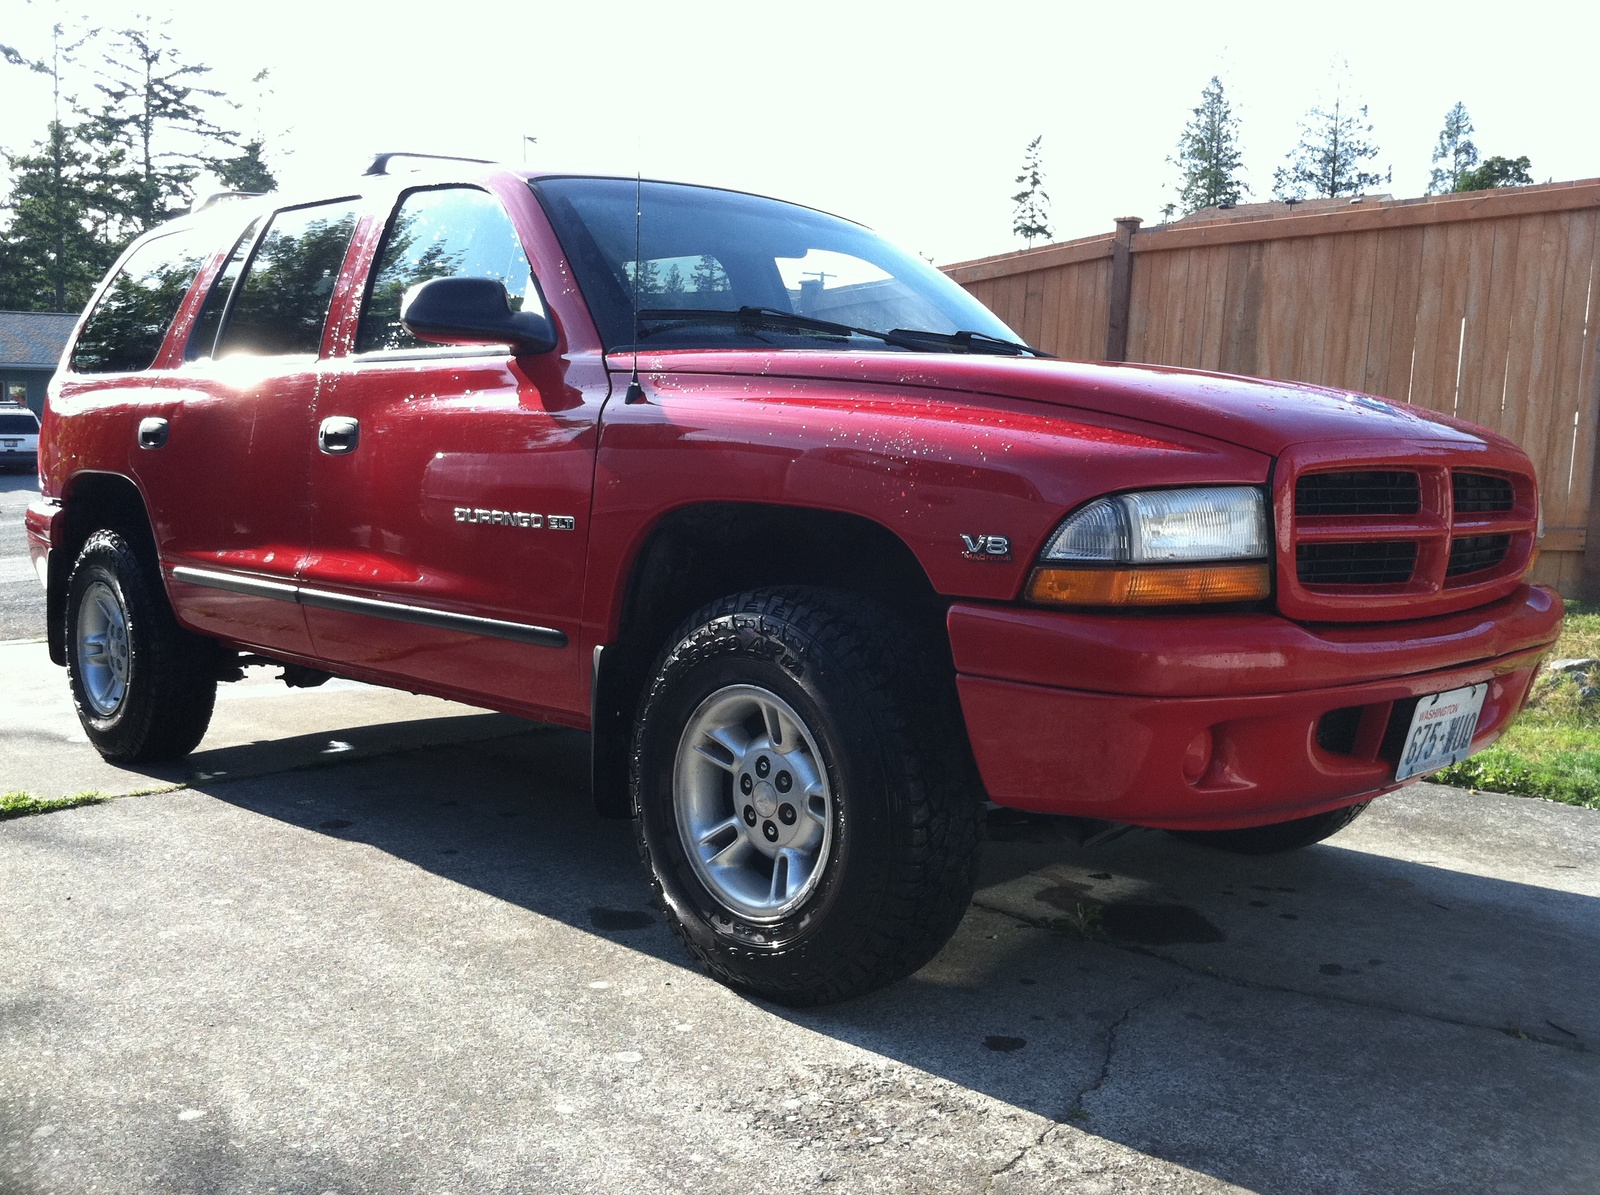 2003 dodge ram 2500 ac heater problems complaints autos post. Black Bedroom Furniture Sets. Home Design Ideas